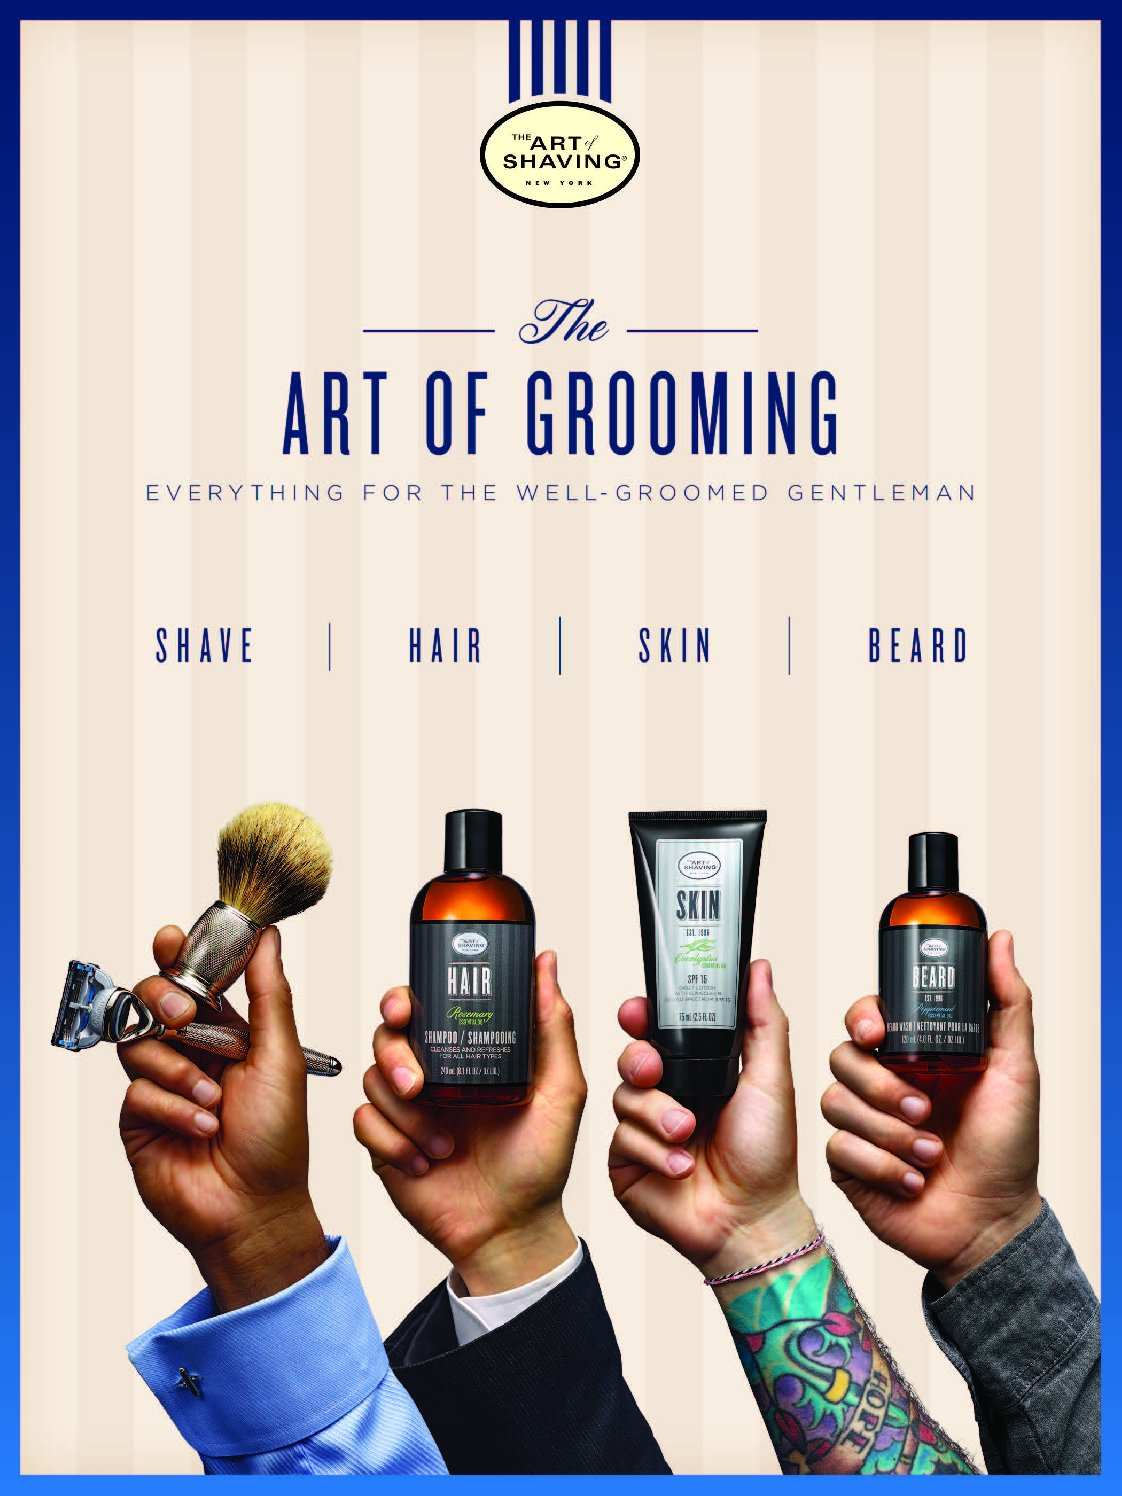 TAOS The Art of Grooming Poster